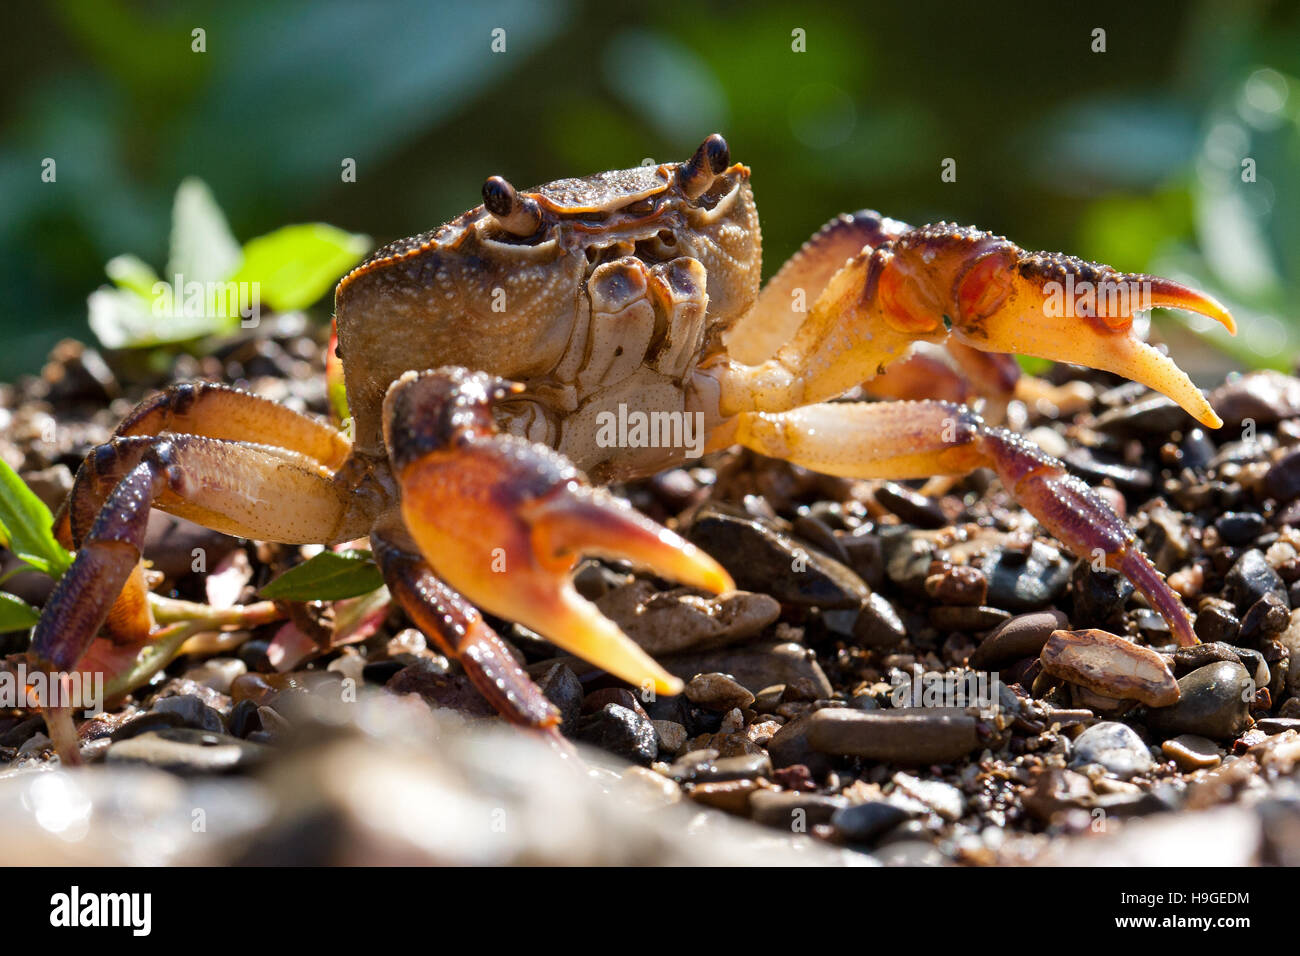 Crab on the river bank - Stock Image